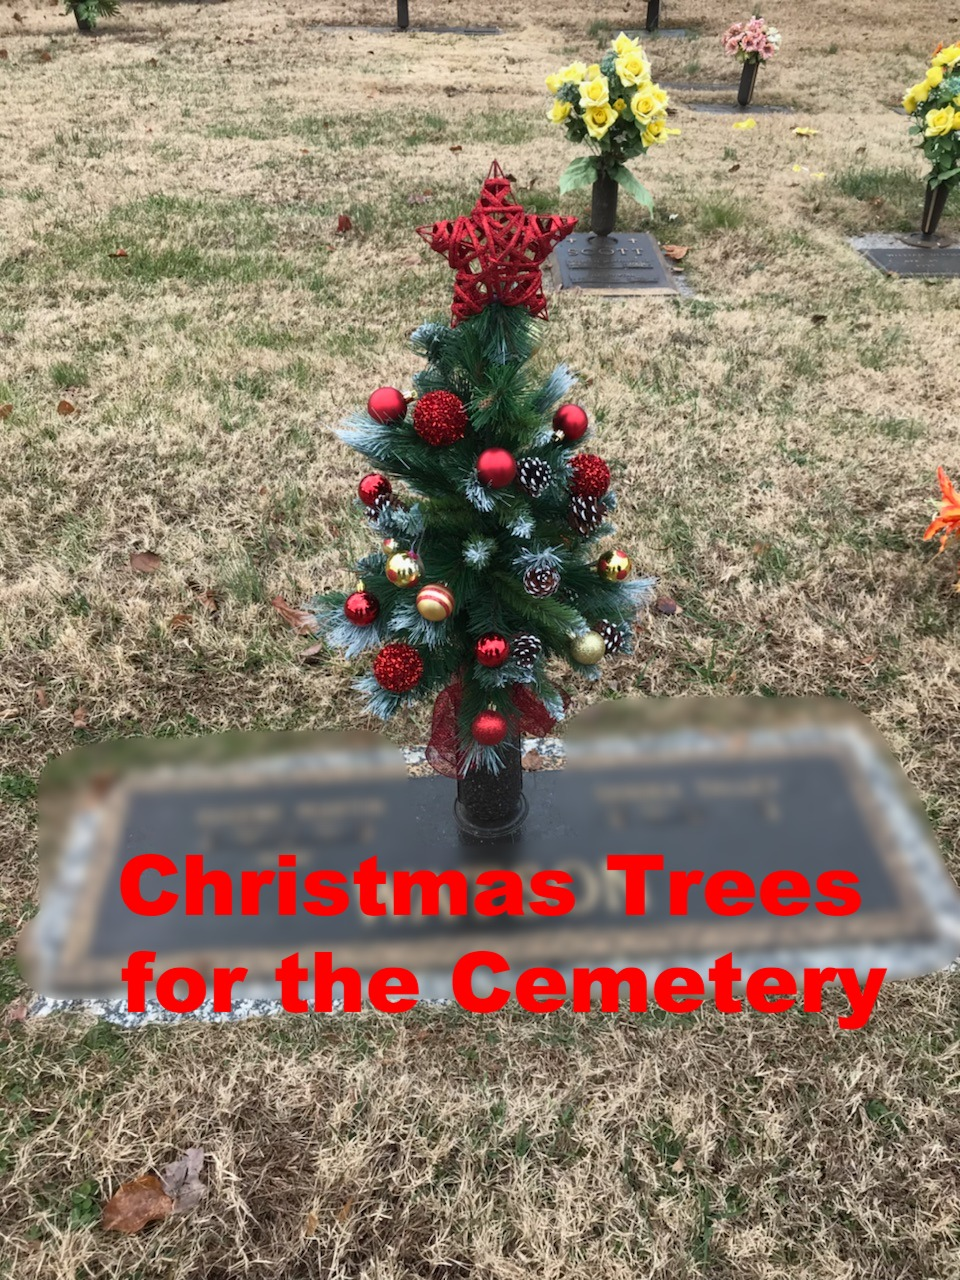 Christmas trees available!